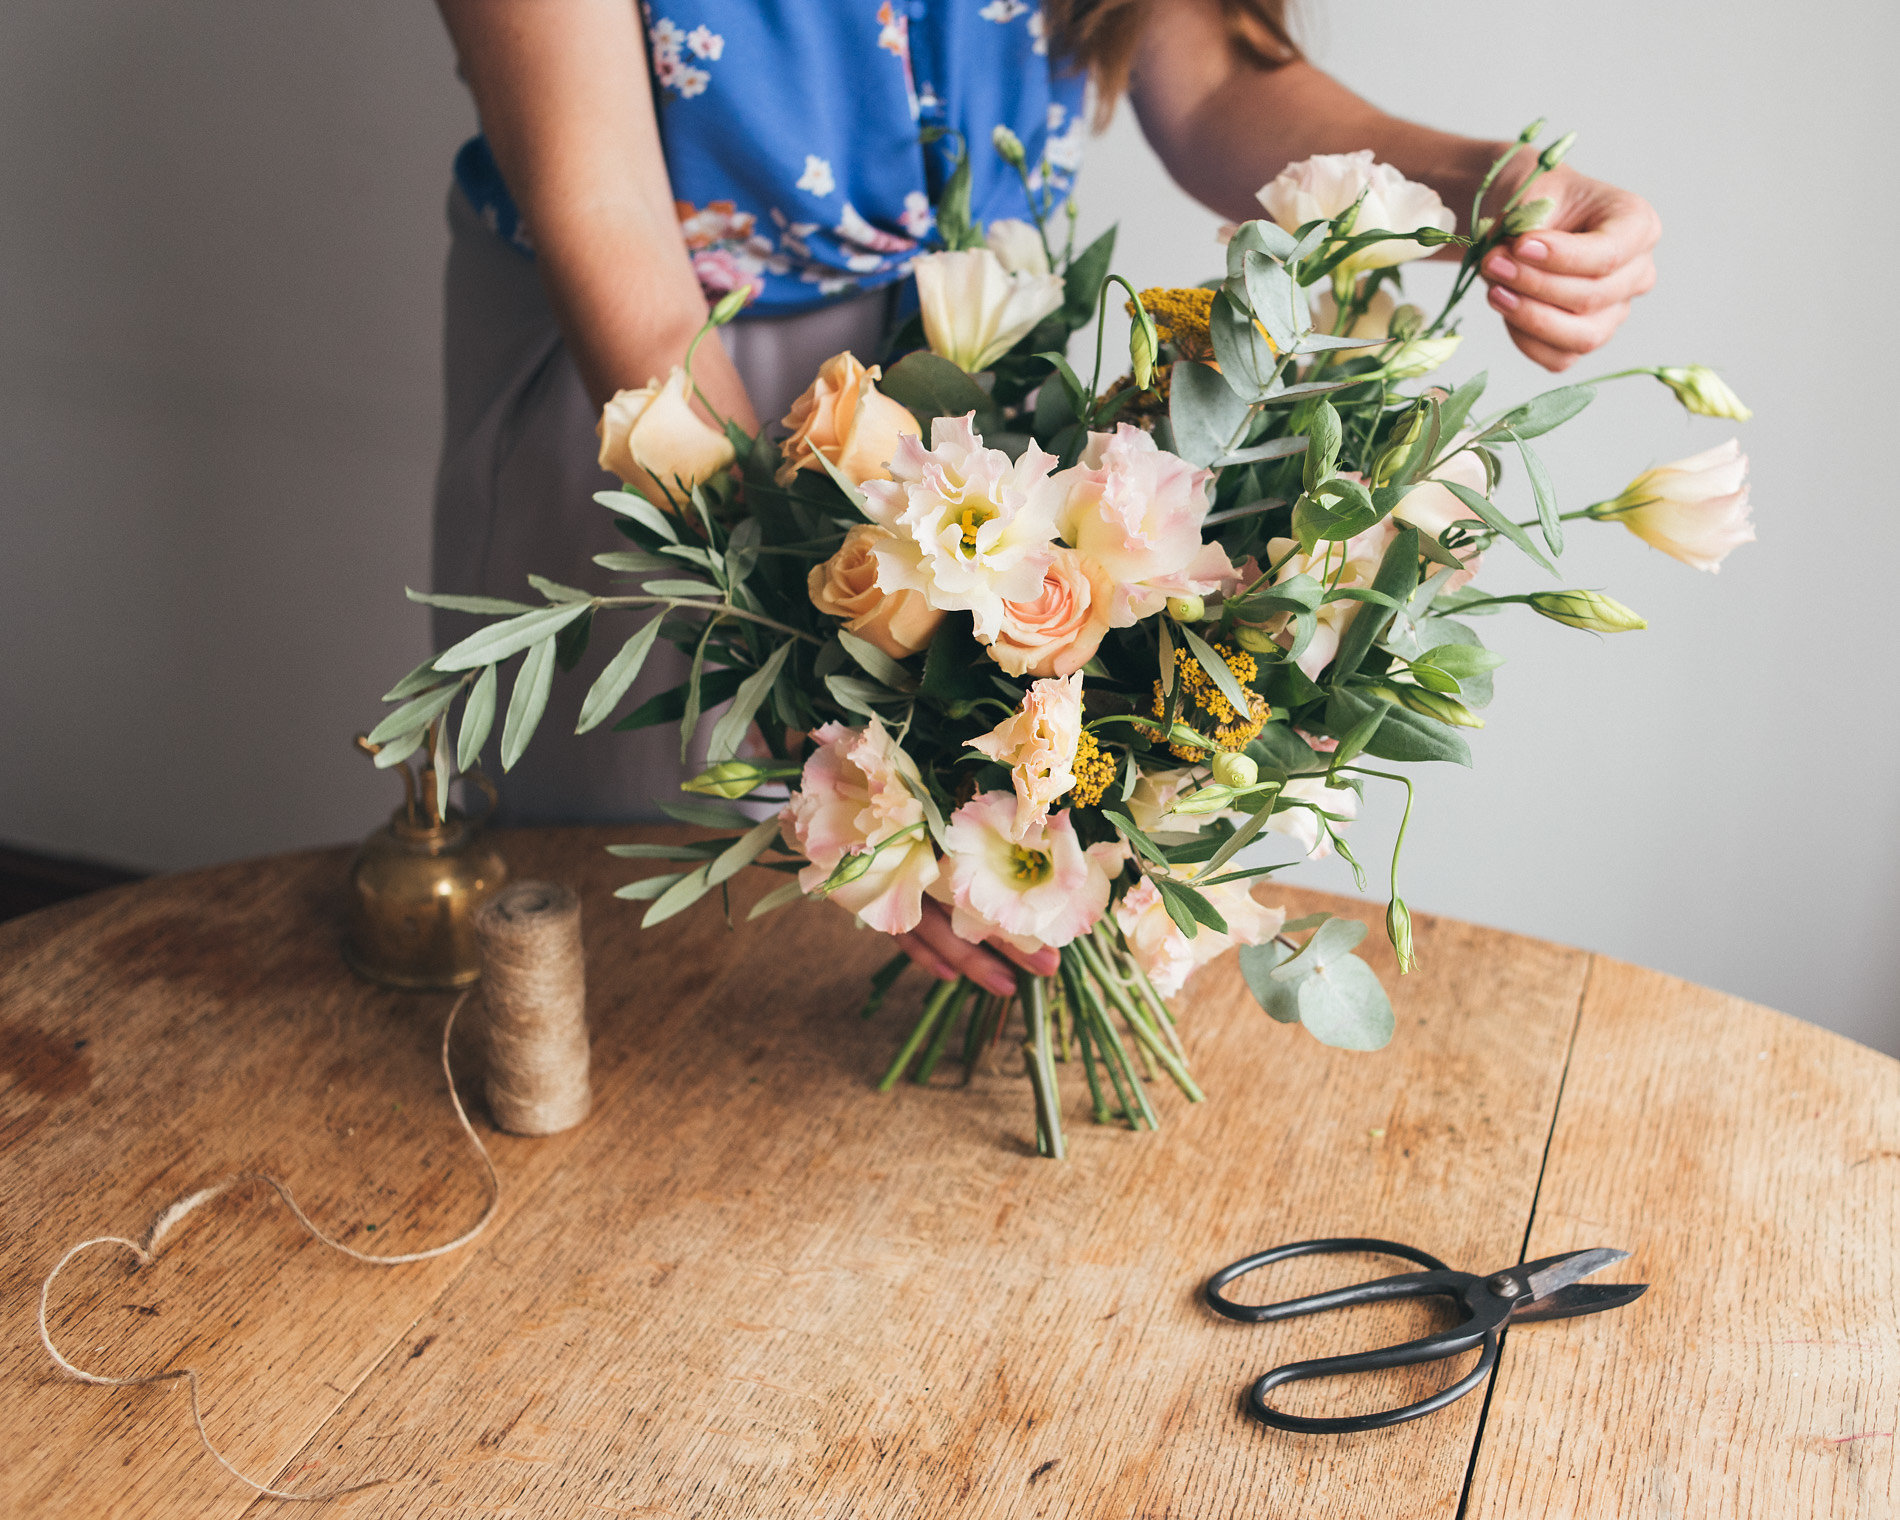 If you'd like to follow step 4 and make something - Here's a guide to arranging flowers in a vase at home.